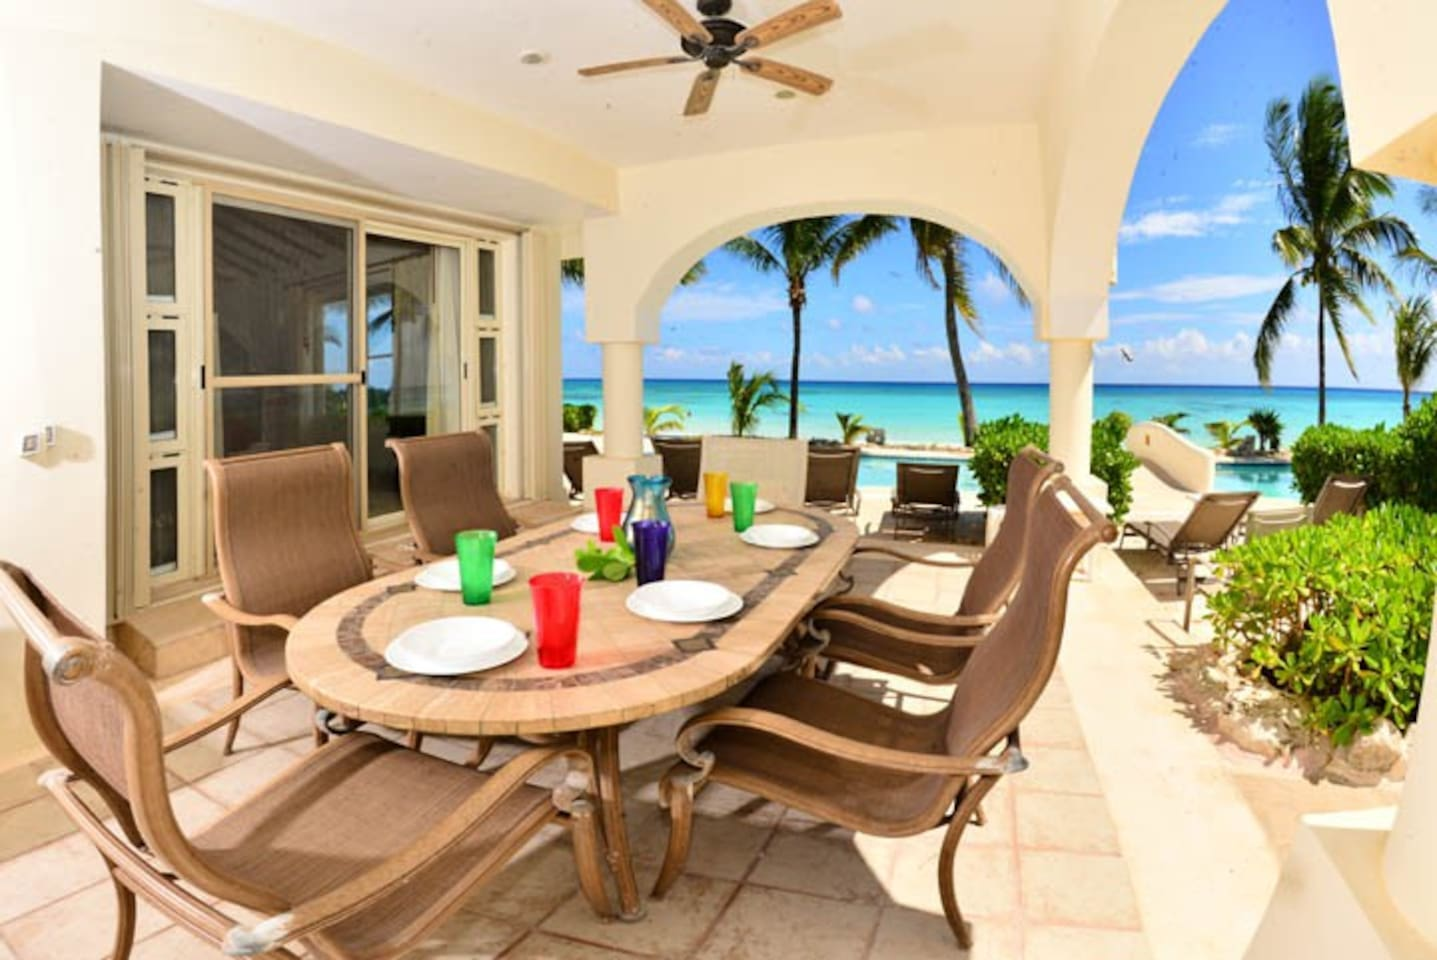 Caribe House#3 Oceanfront Retreat